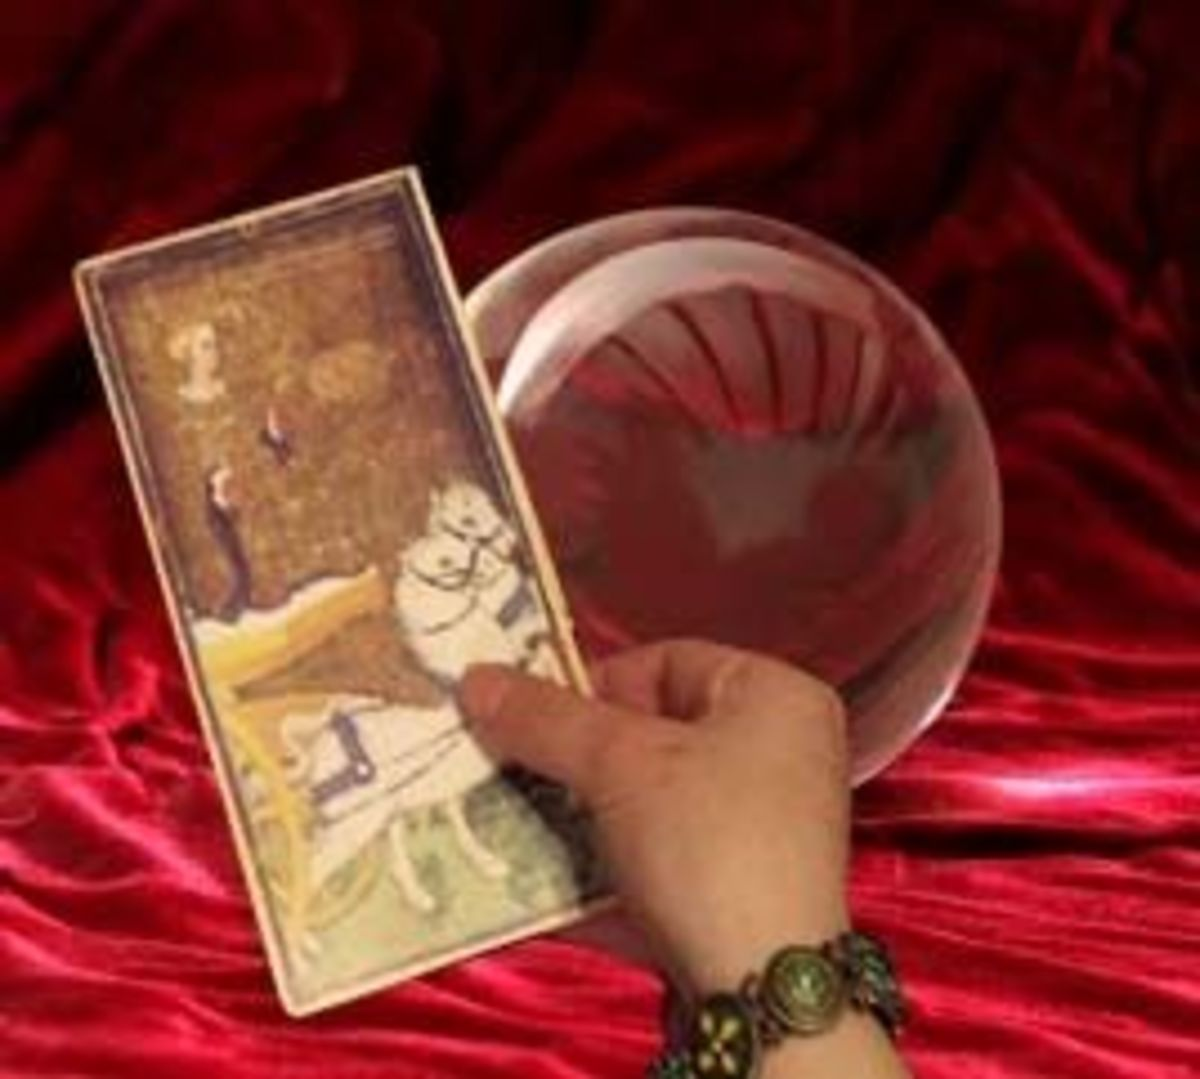 The mystic crystal? Or the occult card?